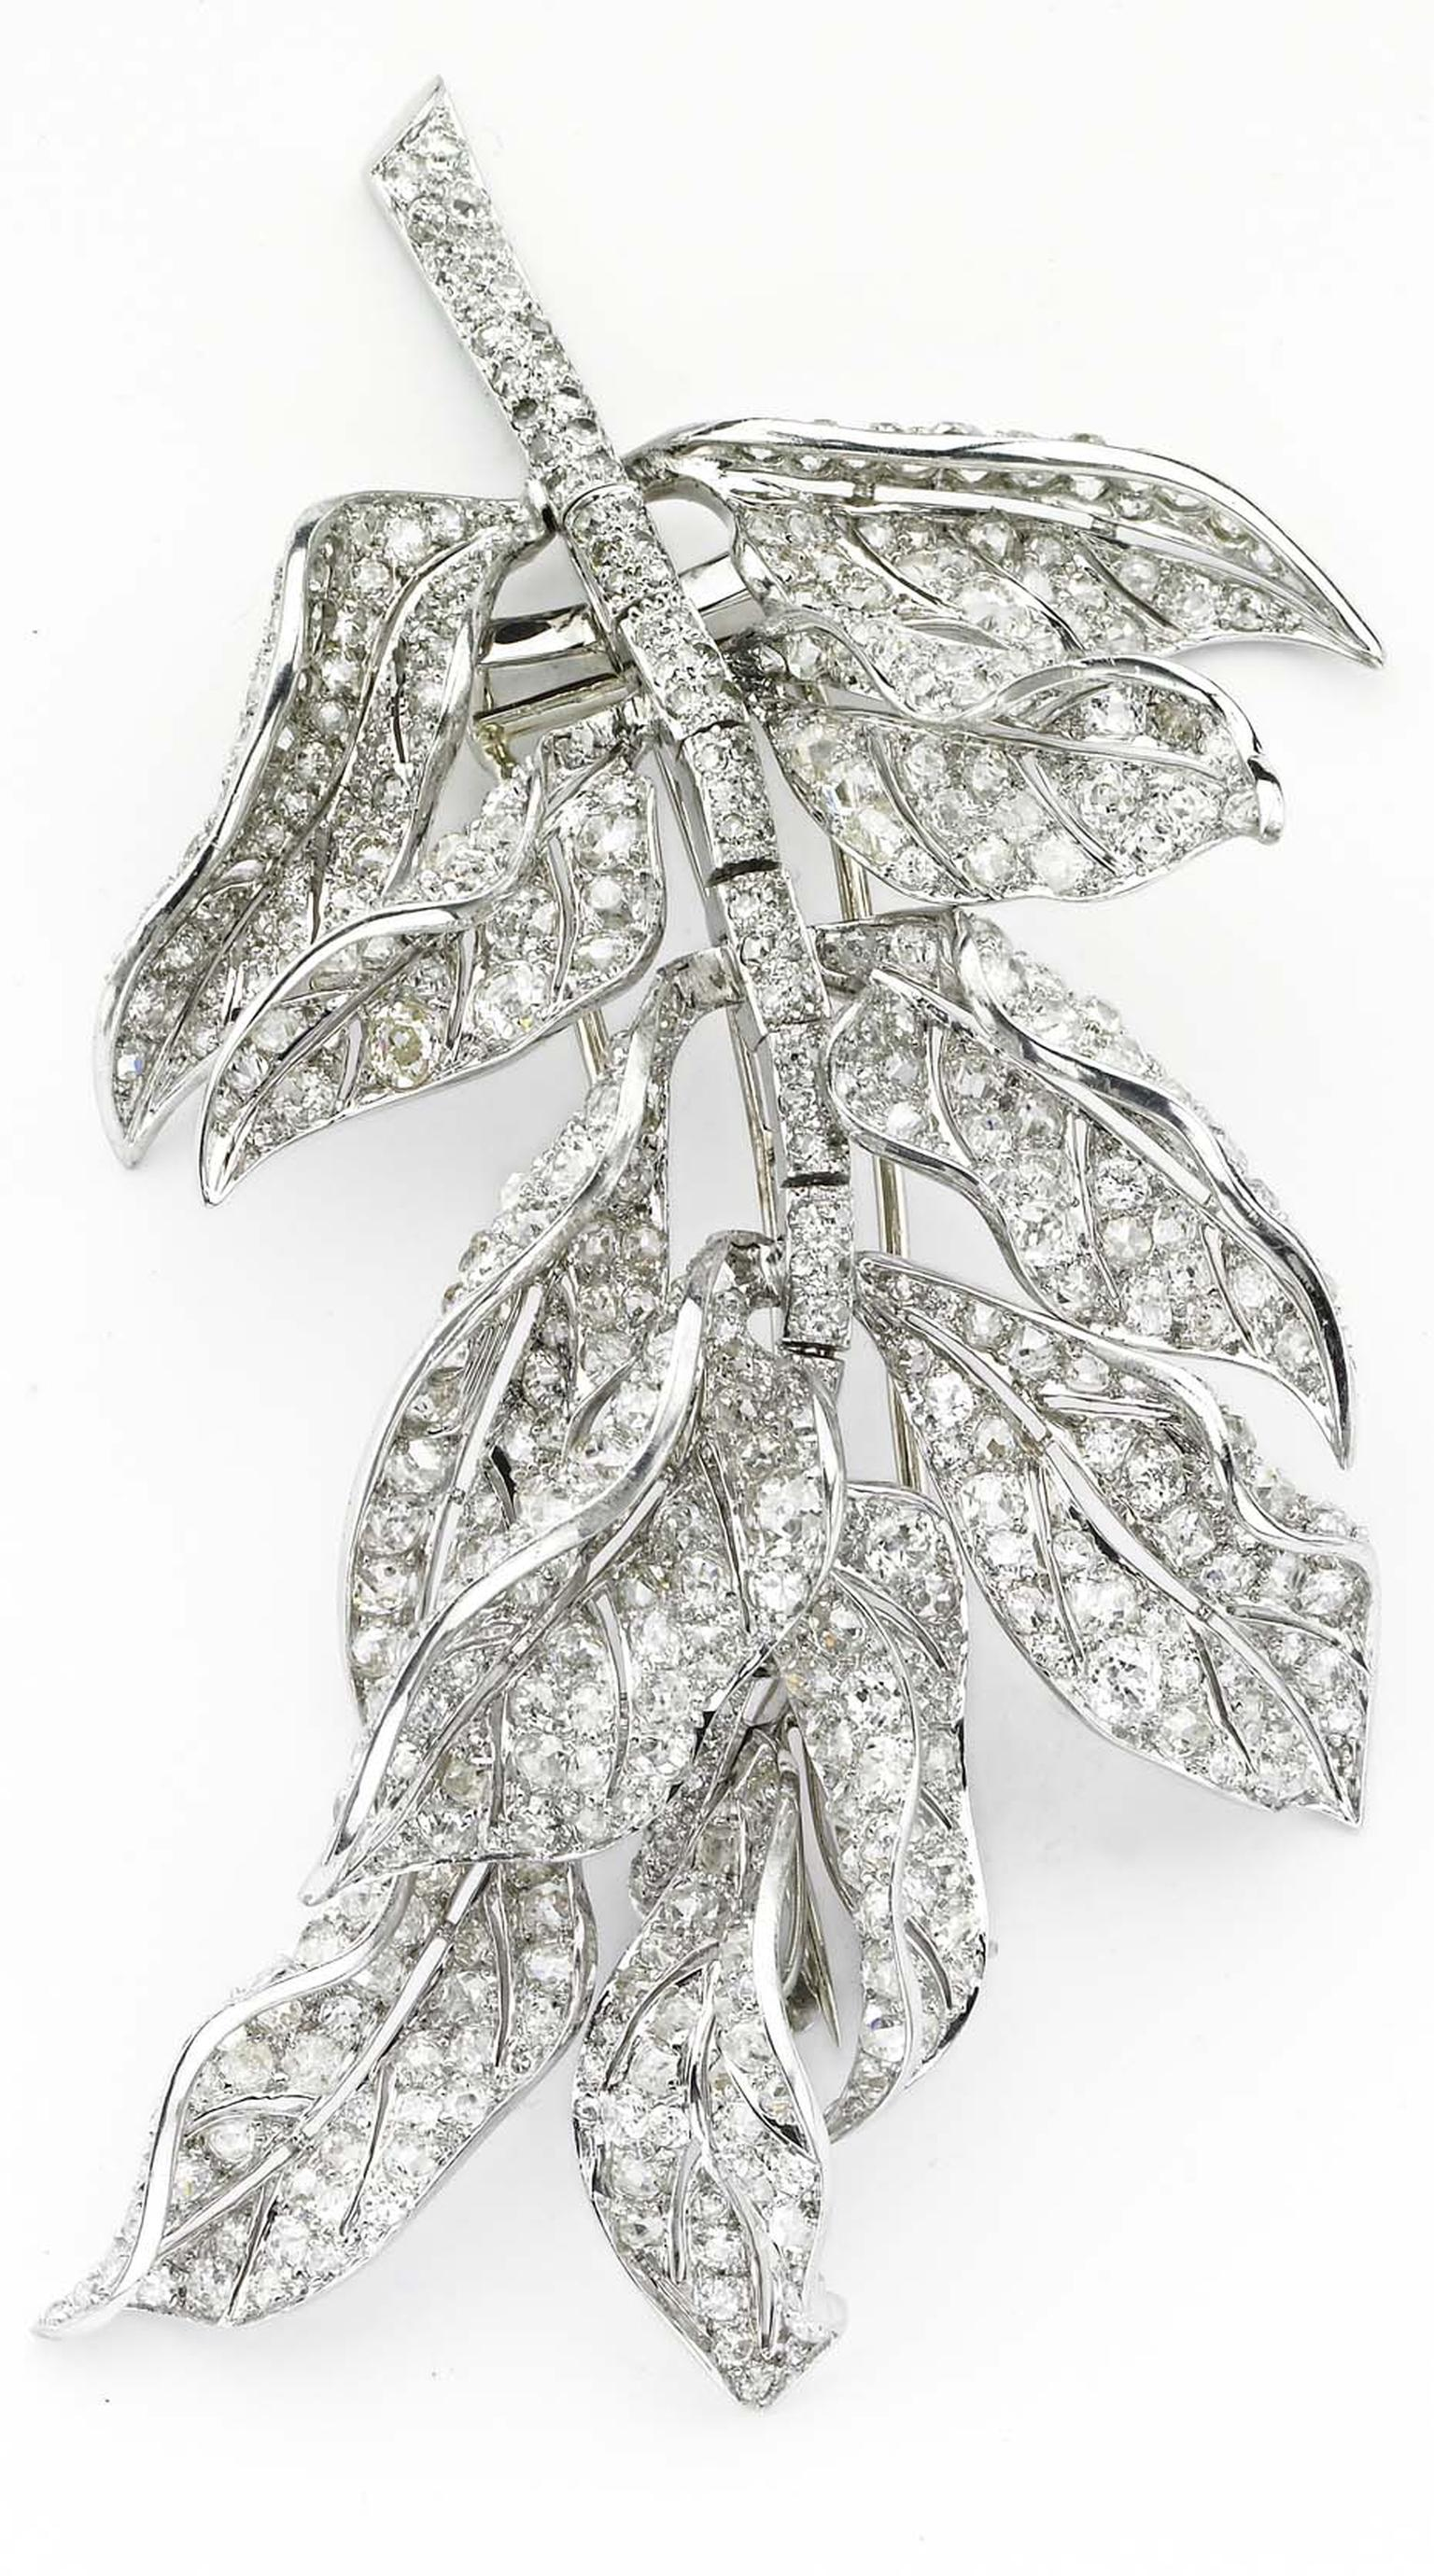 Platinum and diamond brooch by Paul Flato, circa 1930s. Exhibited by Primavera Gallery.